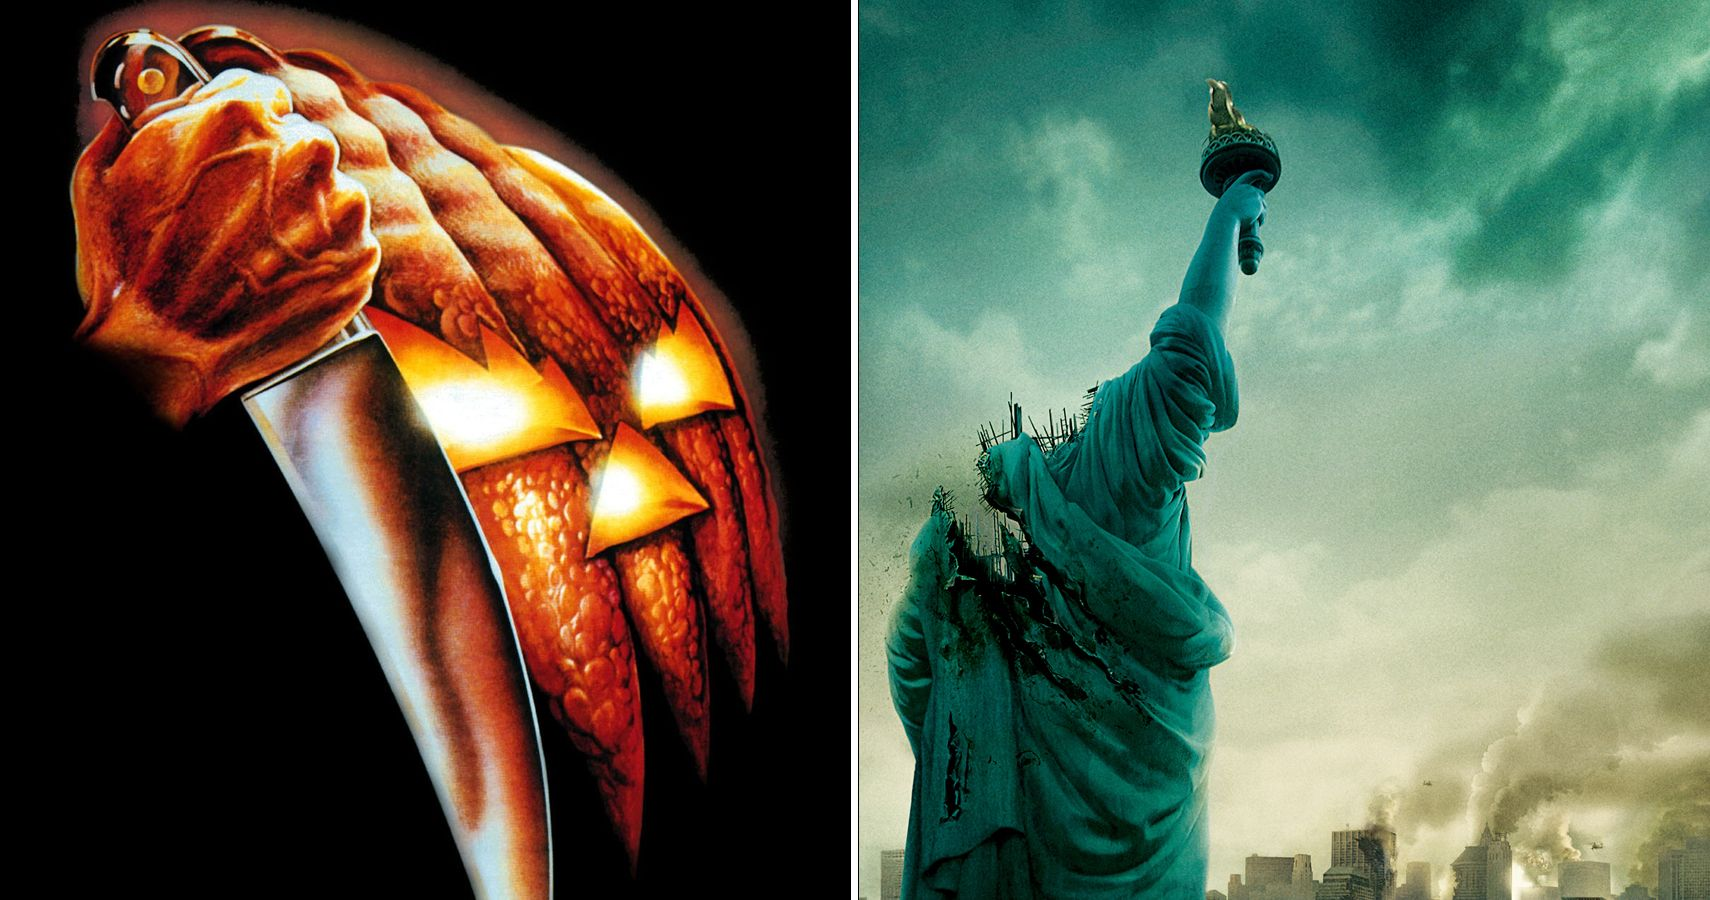 10 Hidden Details You Never Noticed In Horror Movie Posters